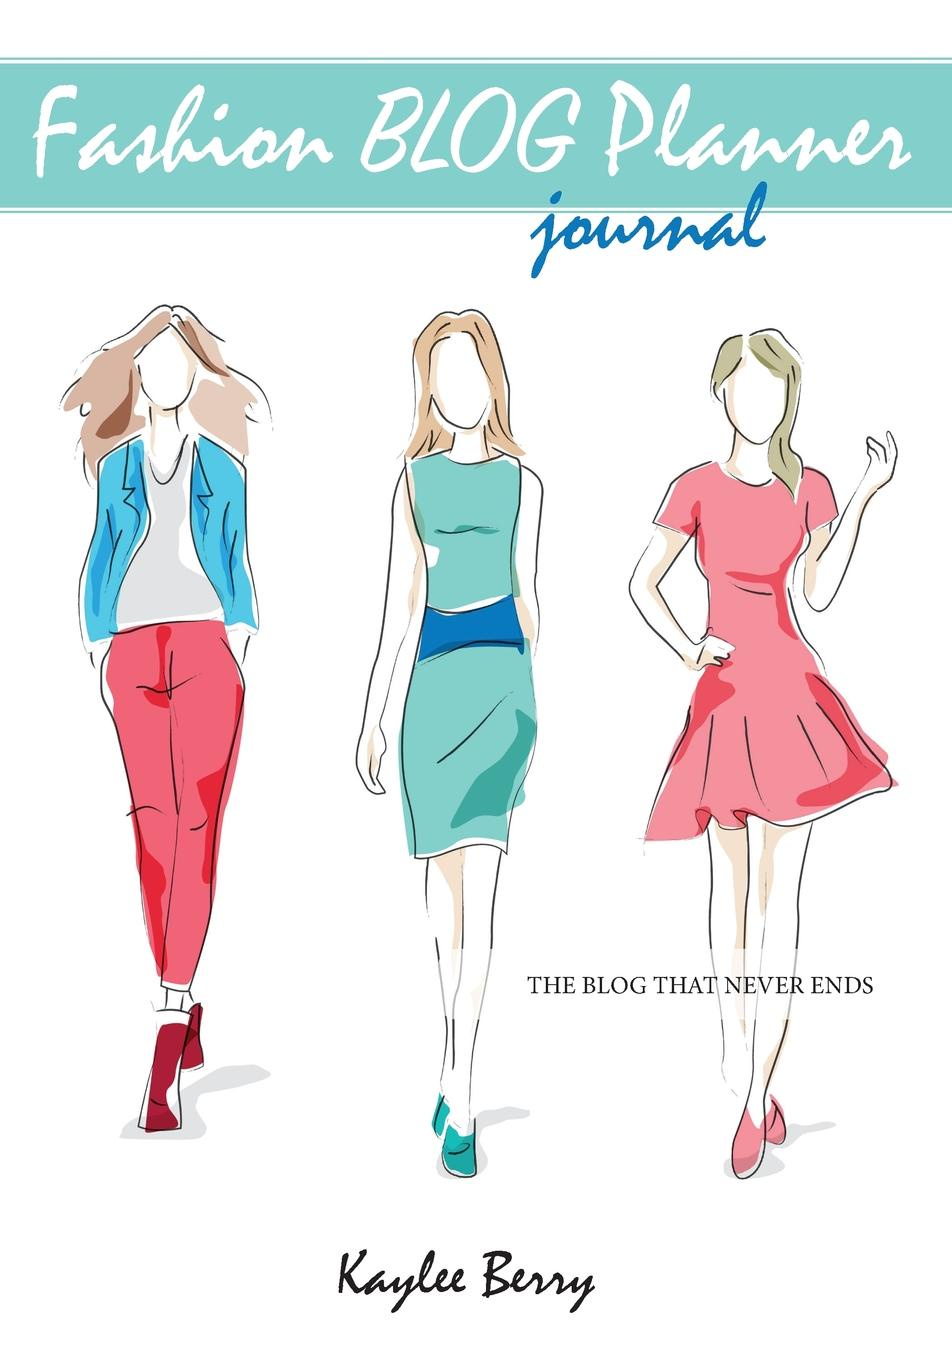 Kaylee Berry Fashion Blog Planner Journal - Style Blogging. Never run out of things to blog about again. kaylee berry fashion blog planner journal style blogging never run out of things to blog about again